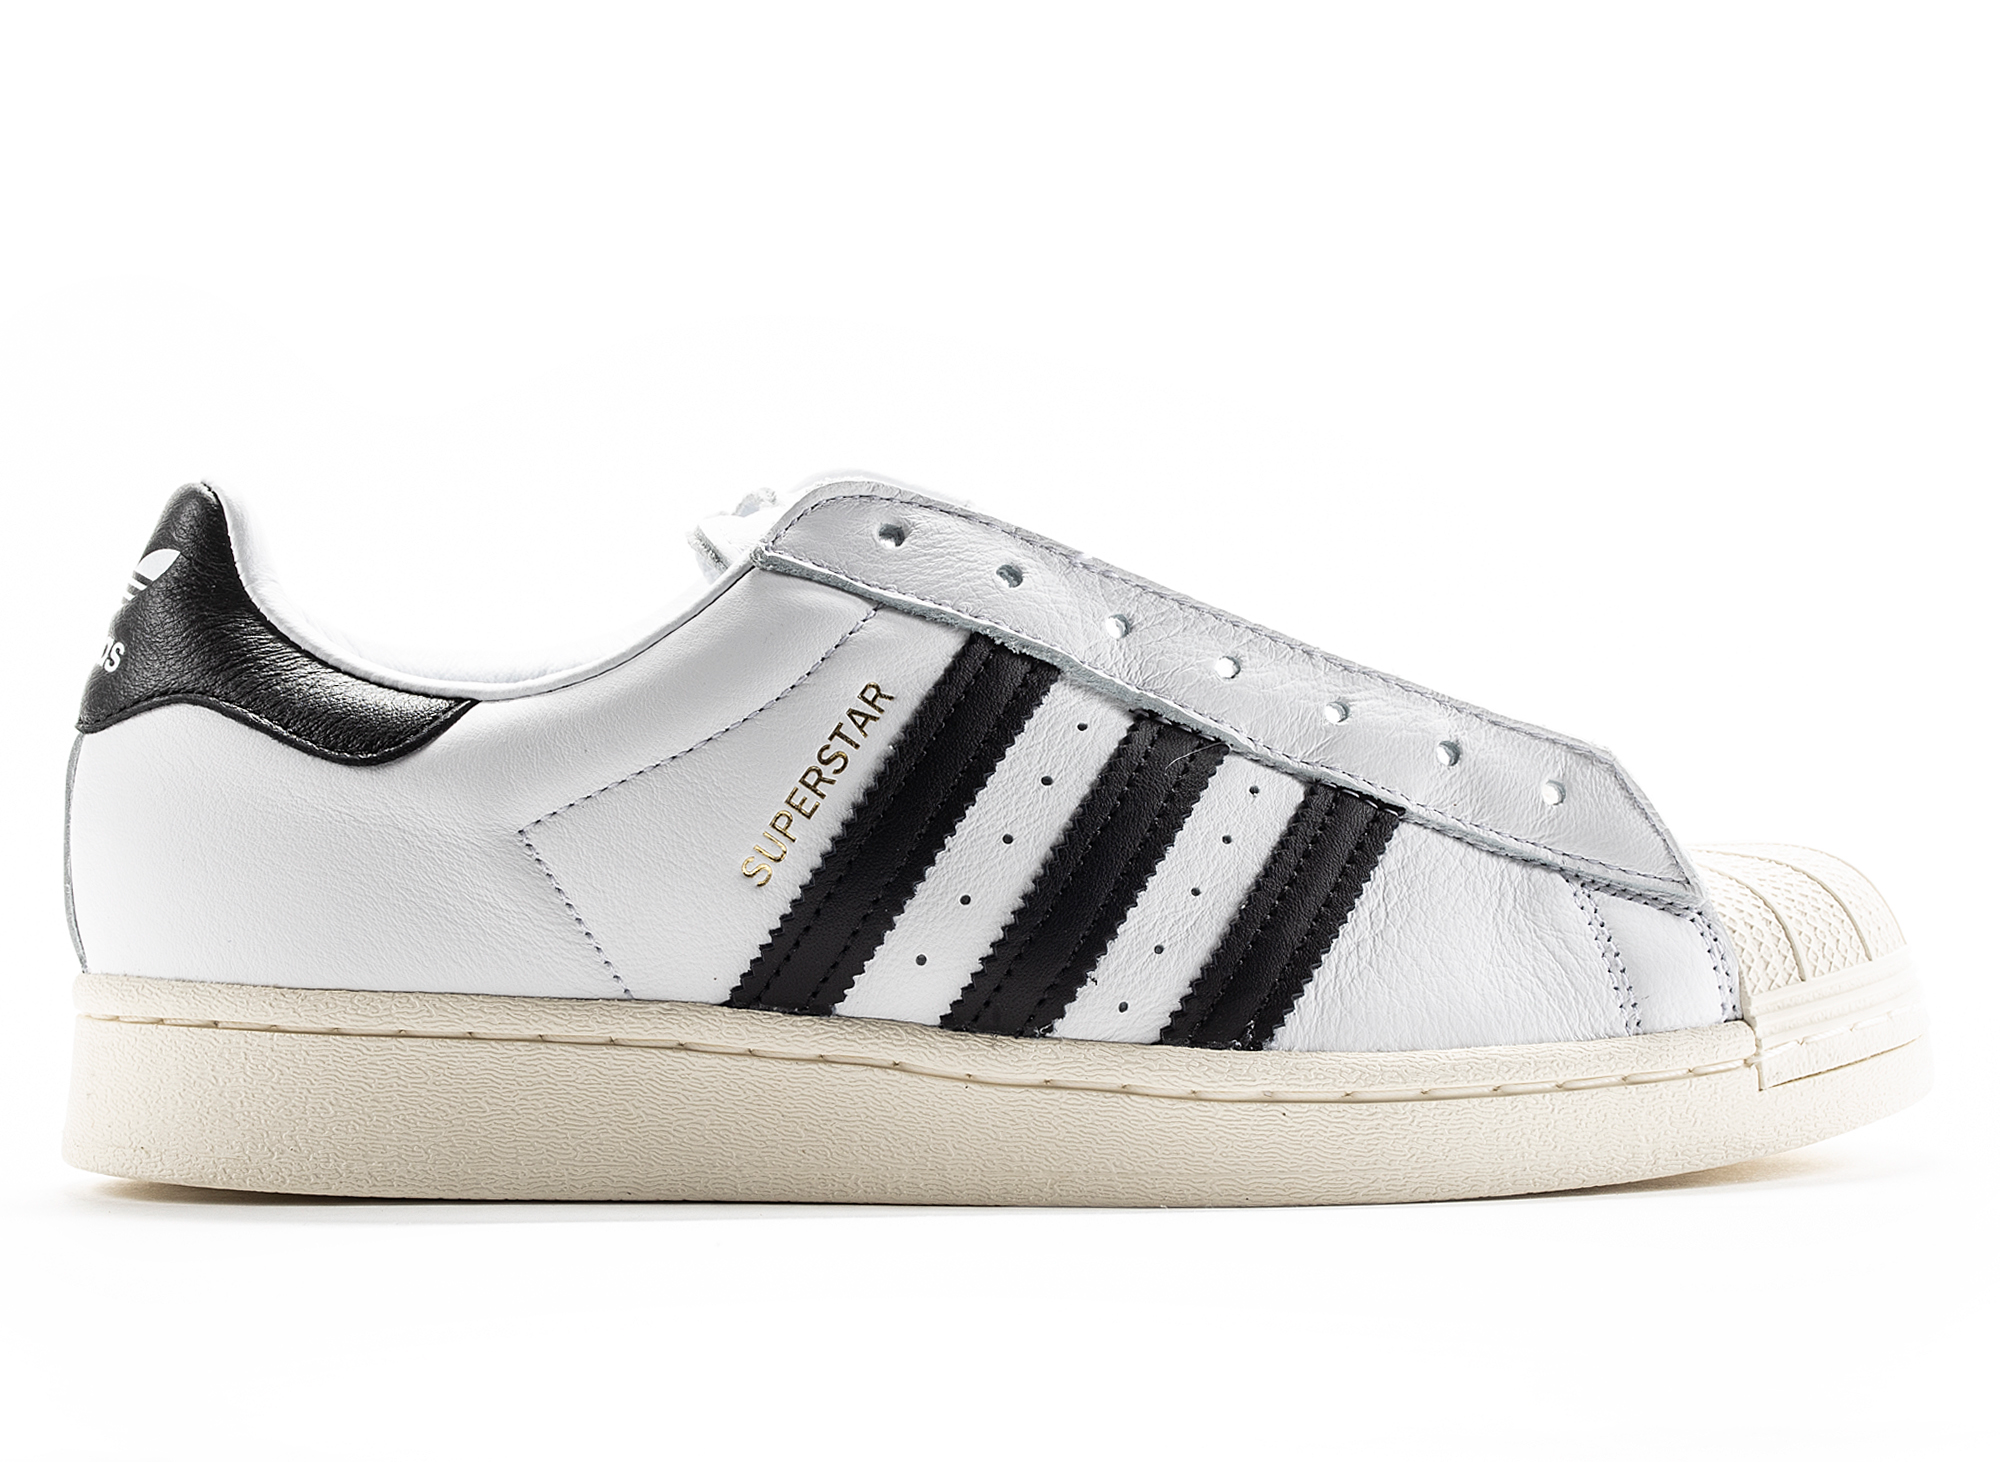 Adidas Superstar Laceless Sneakers in White